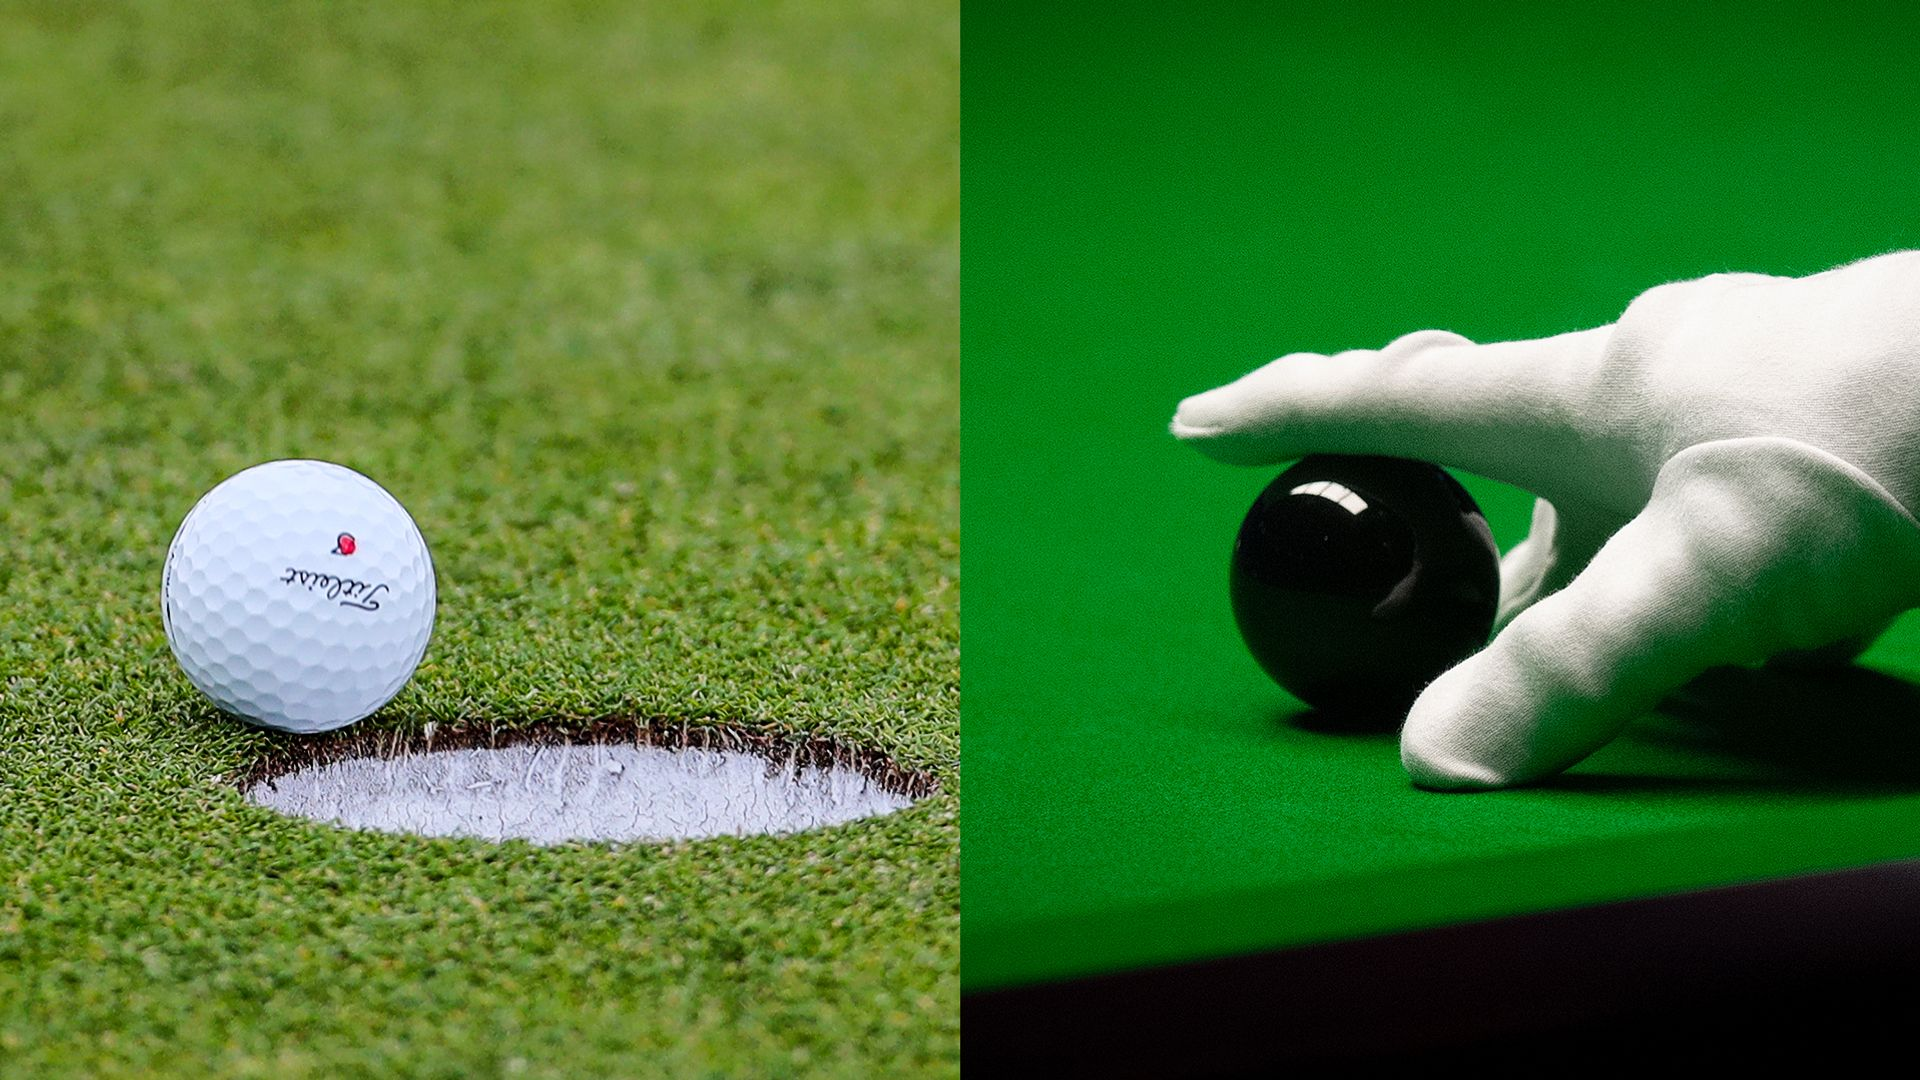 Golf or snooker: Which is harder?